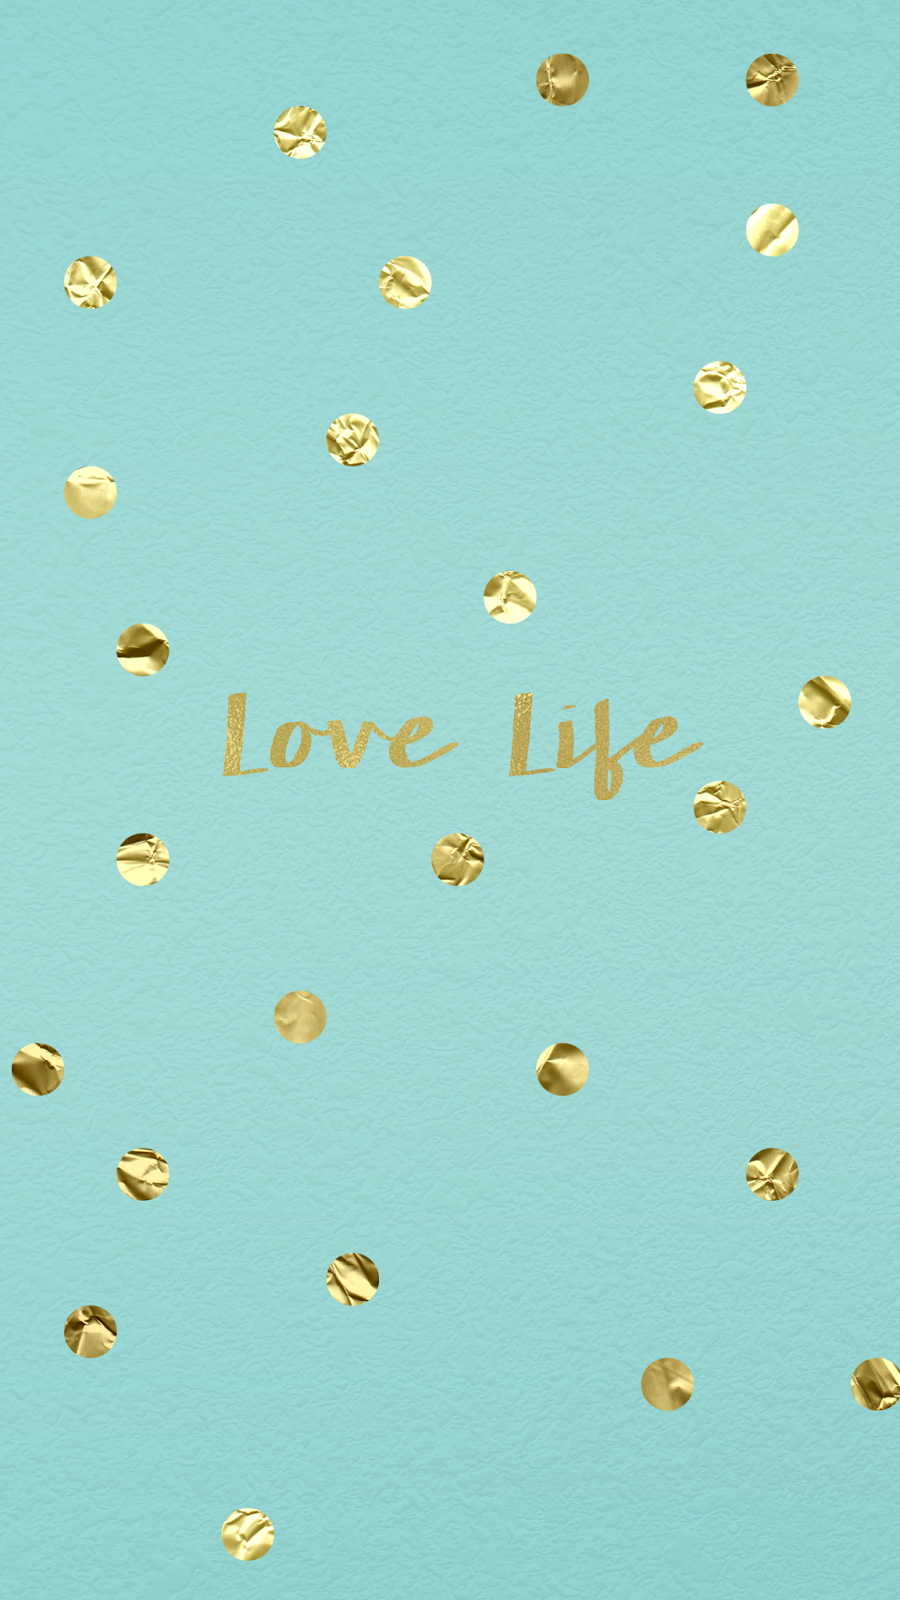 wallpaper, background, hd, iphone, gold, confetti, tiffany ...